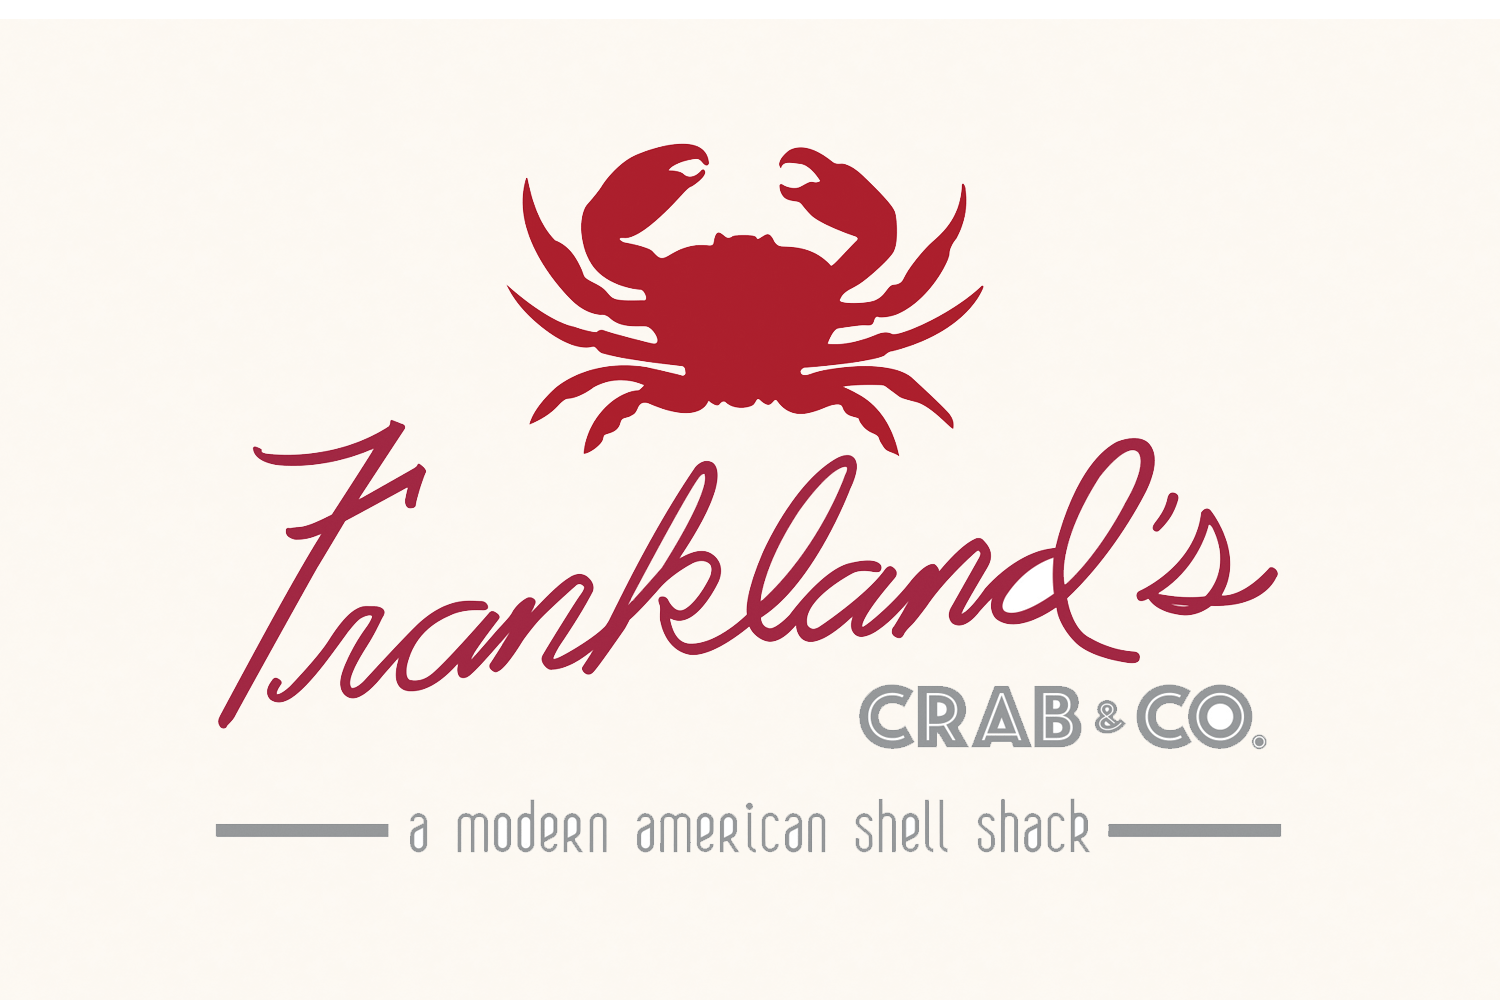 Frankland's Crab & Co.